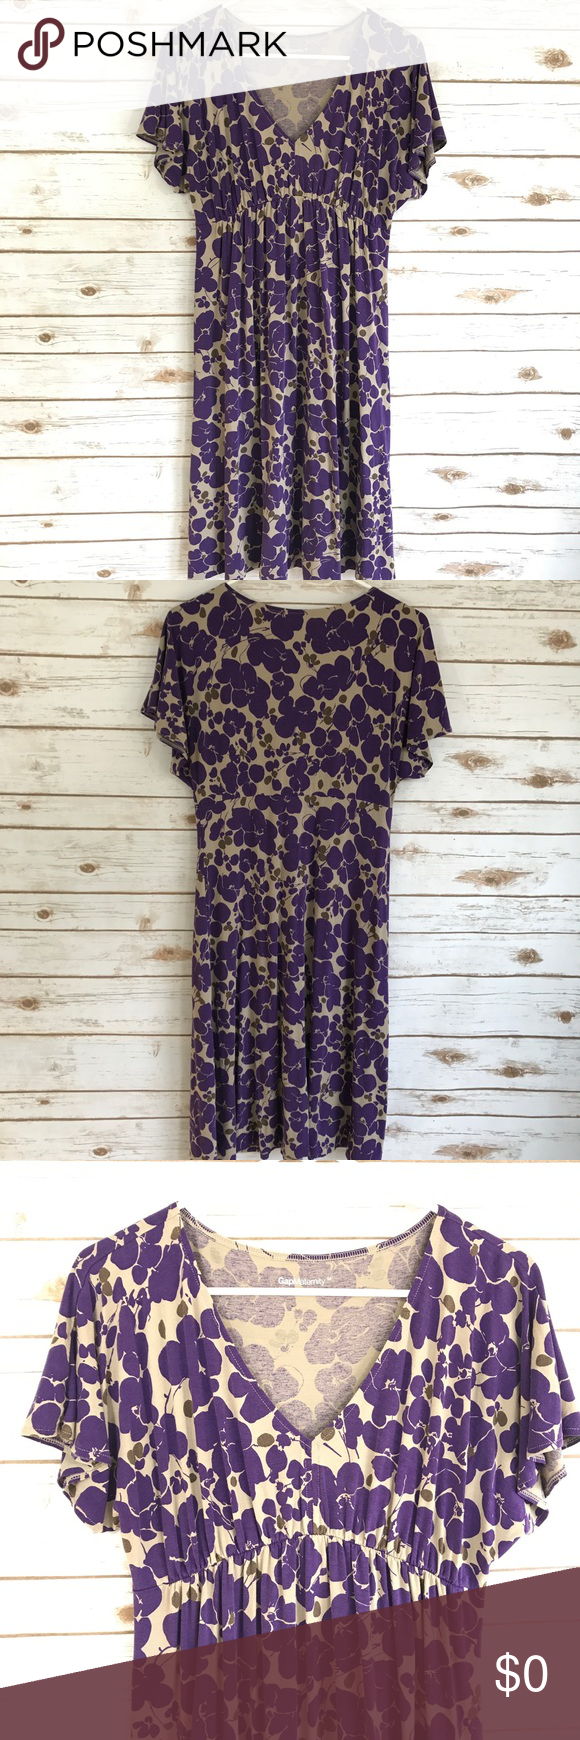 Gap maternity dress floral purple flowers medium maternity dresses gap maternity dress floral purple flowers medium gap maternity floral dress with v neck and short ombrellifo Image collections